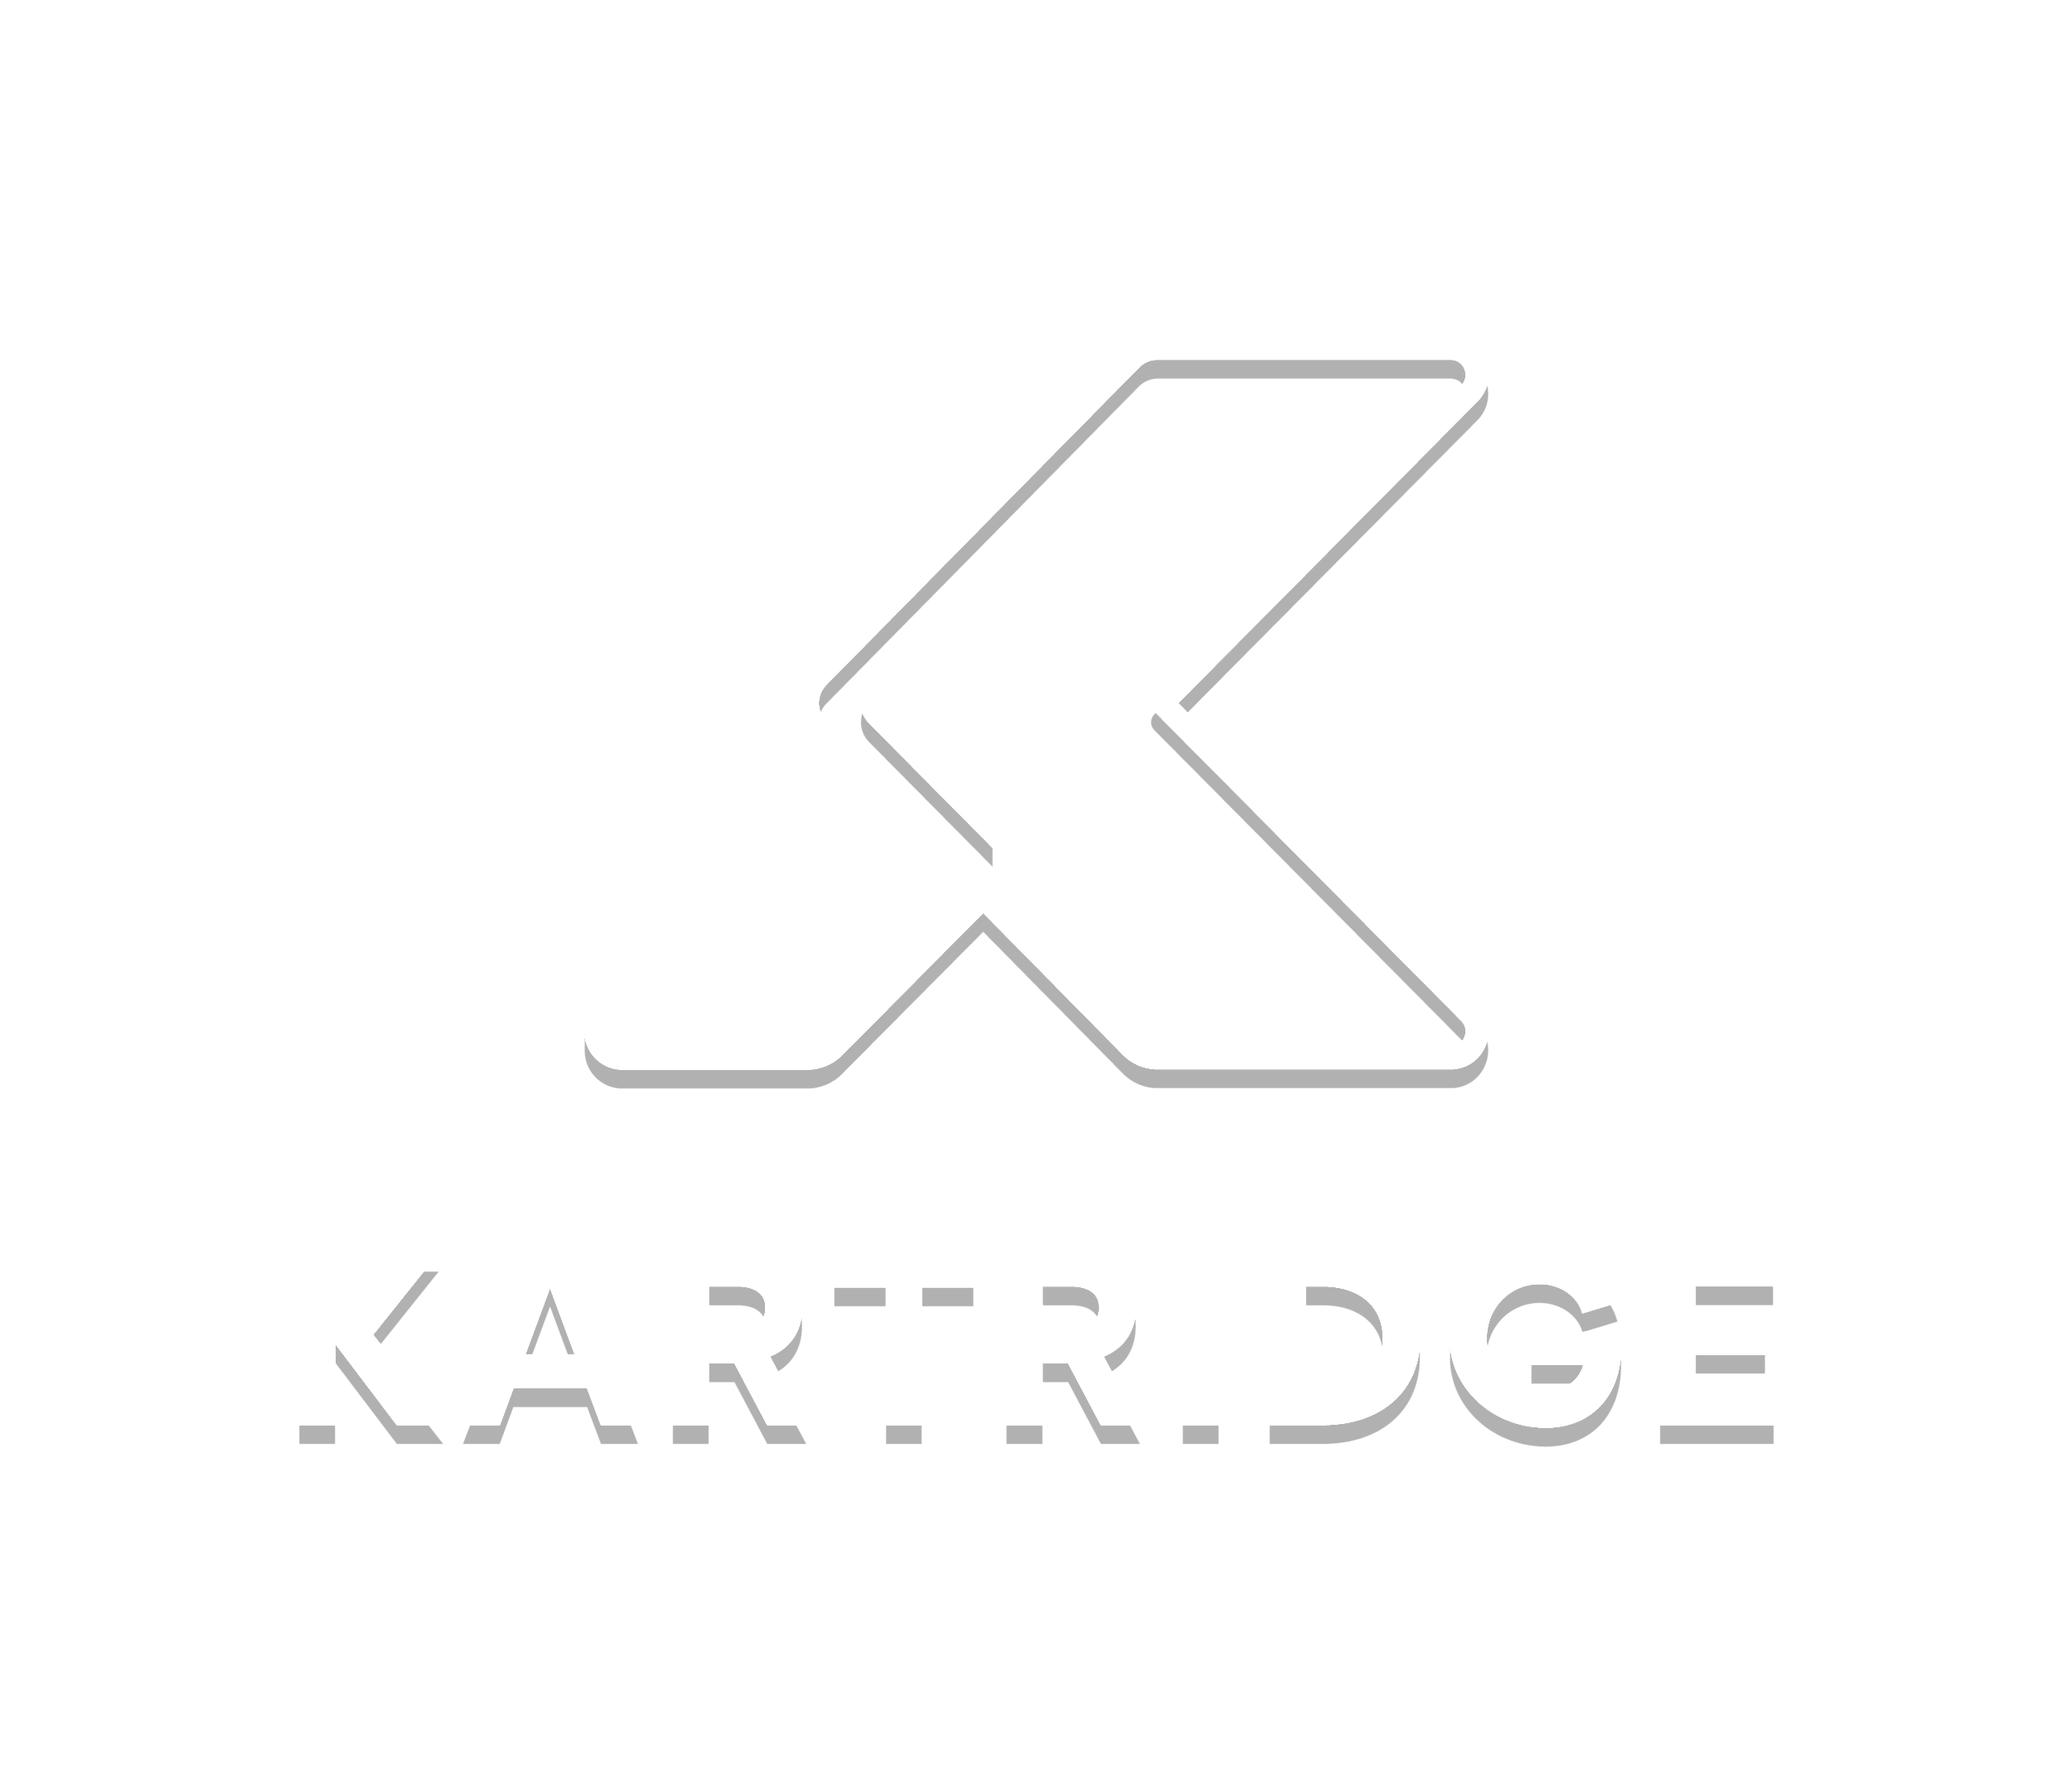 Kartridge-Vertical-Logos-Negative.png